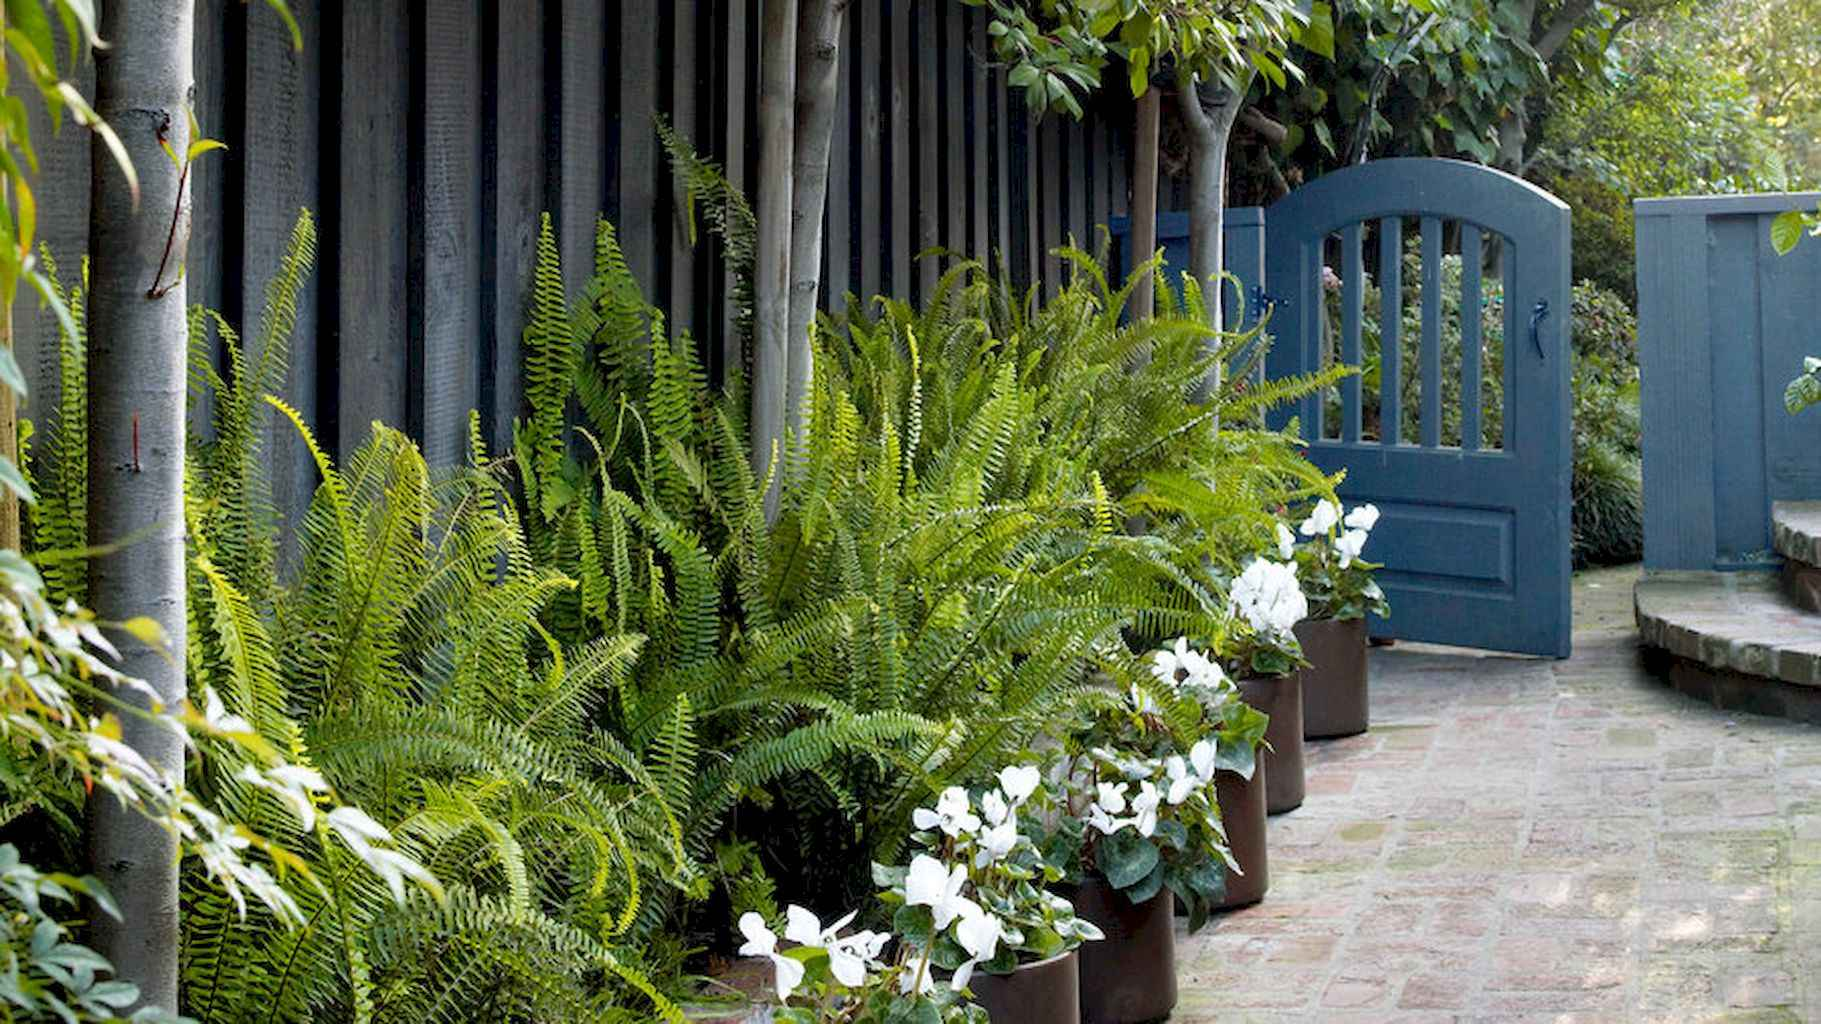 54 Incredible Side Yard Garden Landscaping Ideas With Rocks